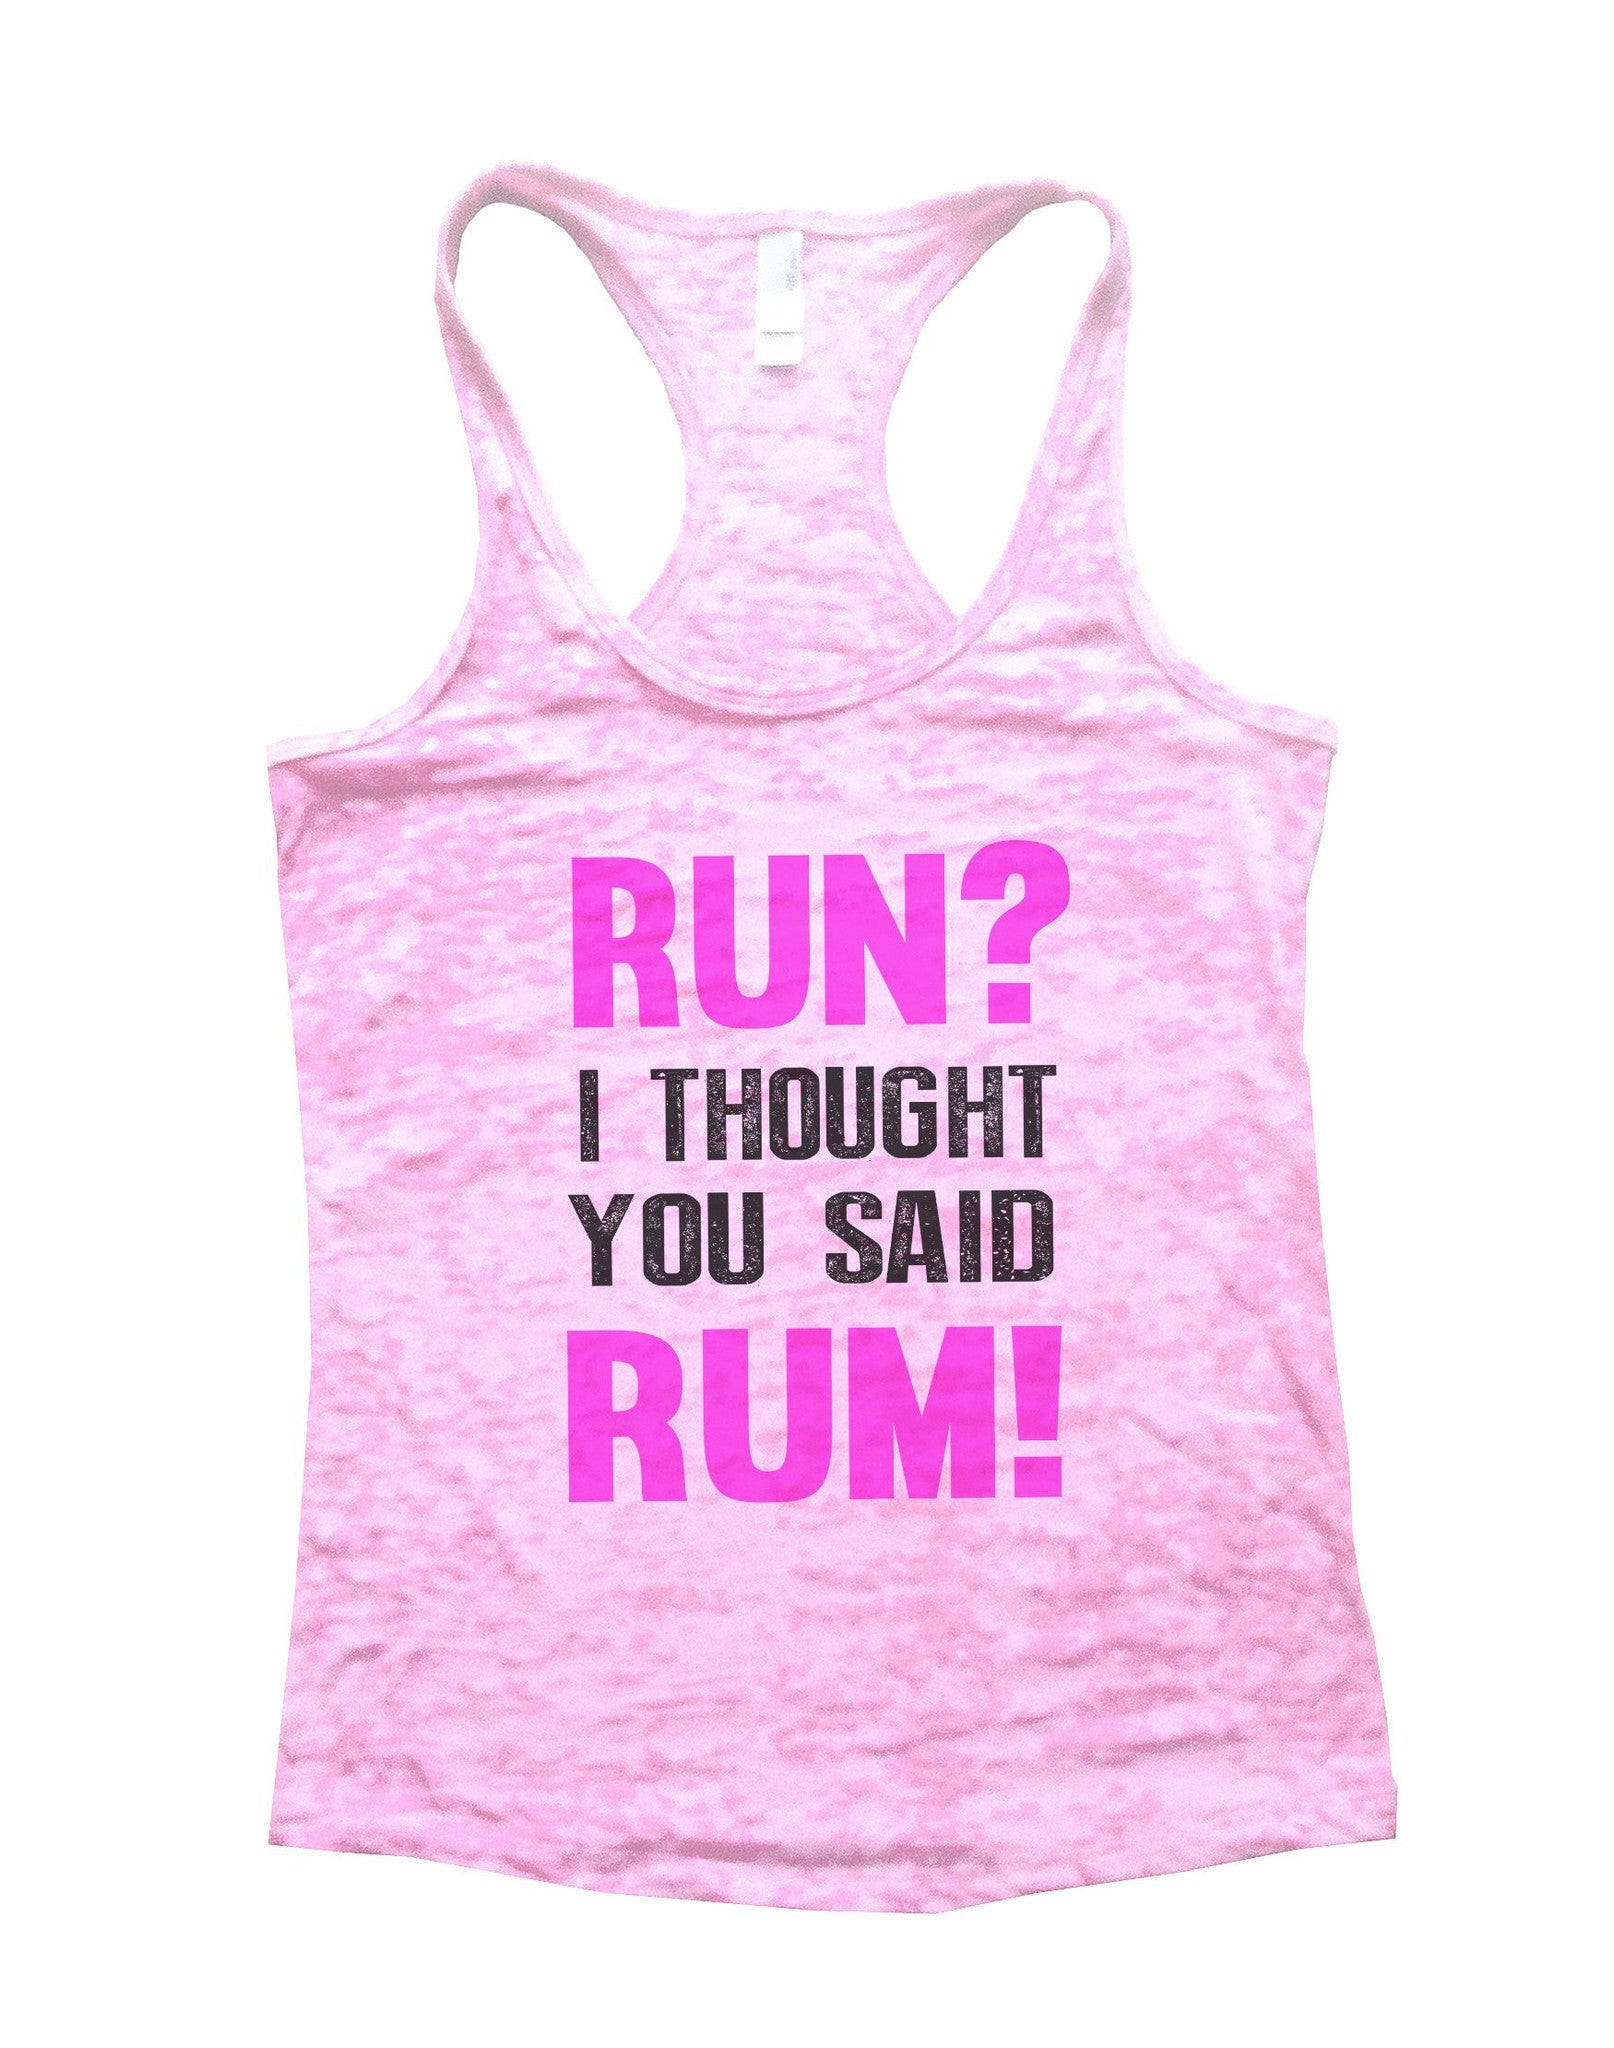 Run? I Thought You Said Rum! Burnout Tank Top By BurnoutTankTops.com - 958 - Funny Shirts Tank Tops Burnouts and Triblends  - 2